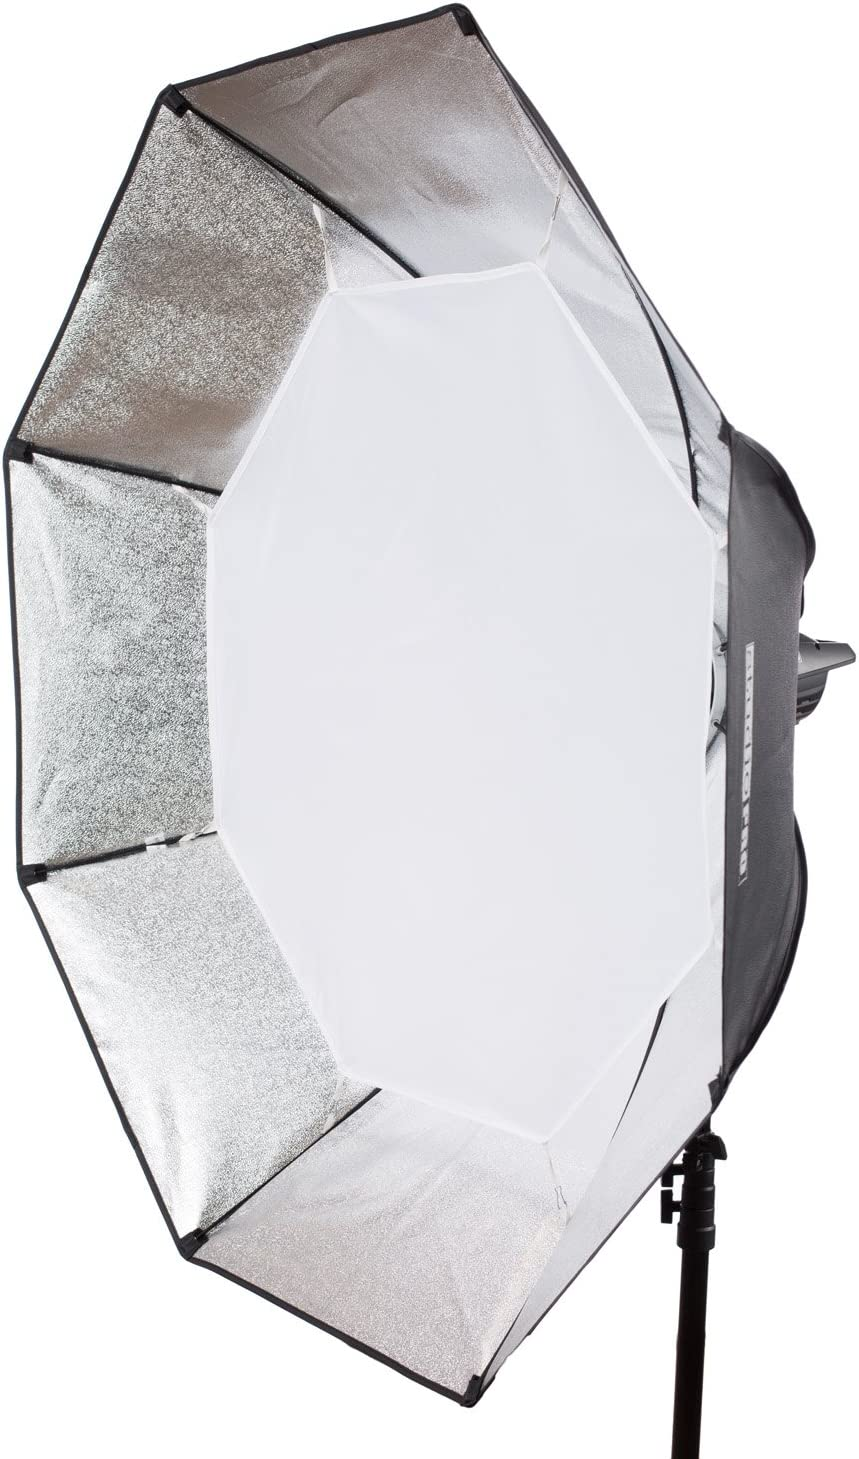 Carry Case Included 1x 48 Octagon Softbox w// Bowens Mount Monolight//Strobe Light Speedring - Durable Nylon Collapsible Fovitec Lightweight